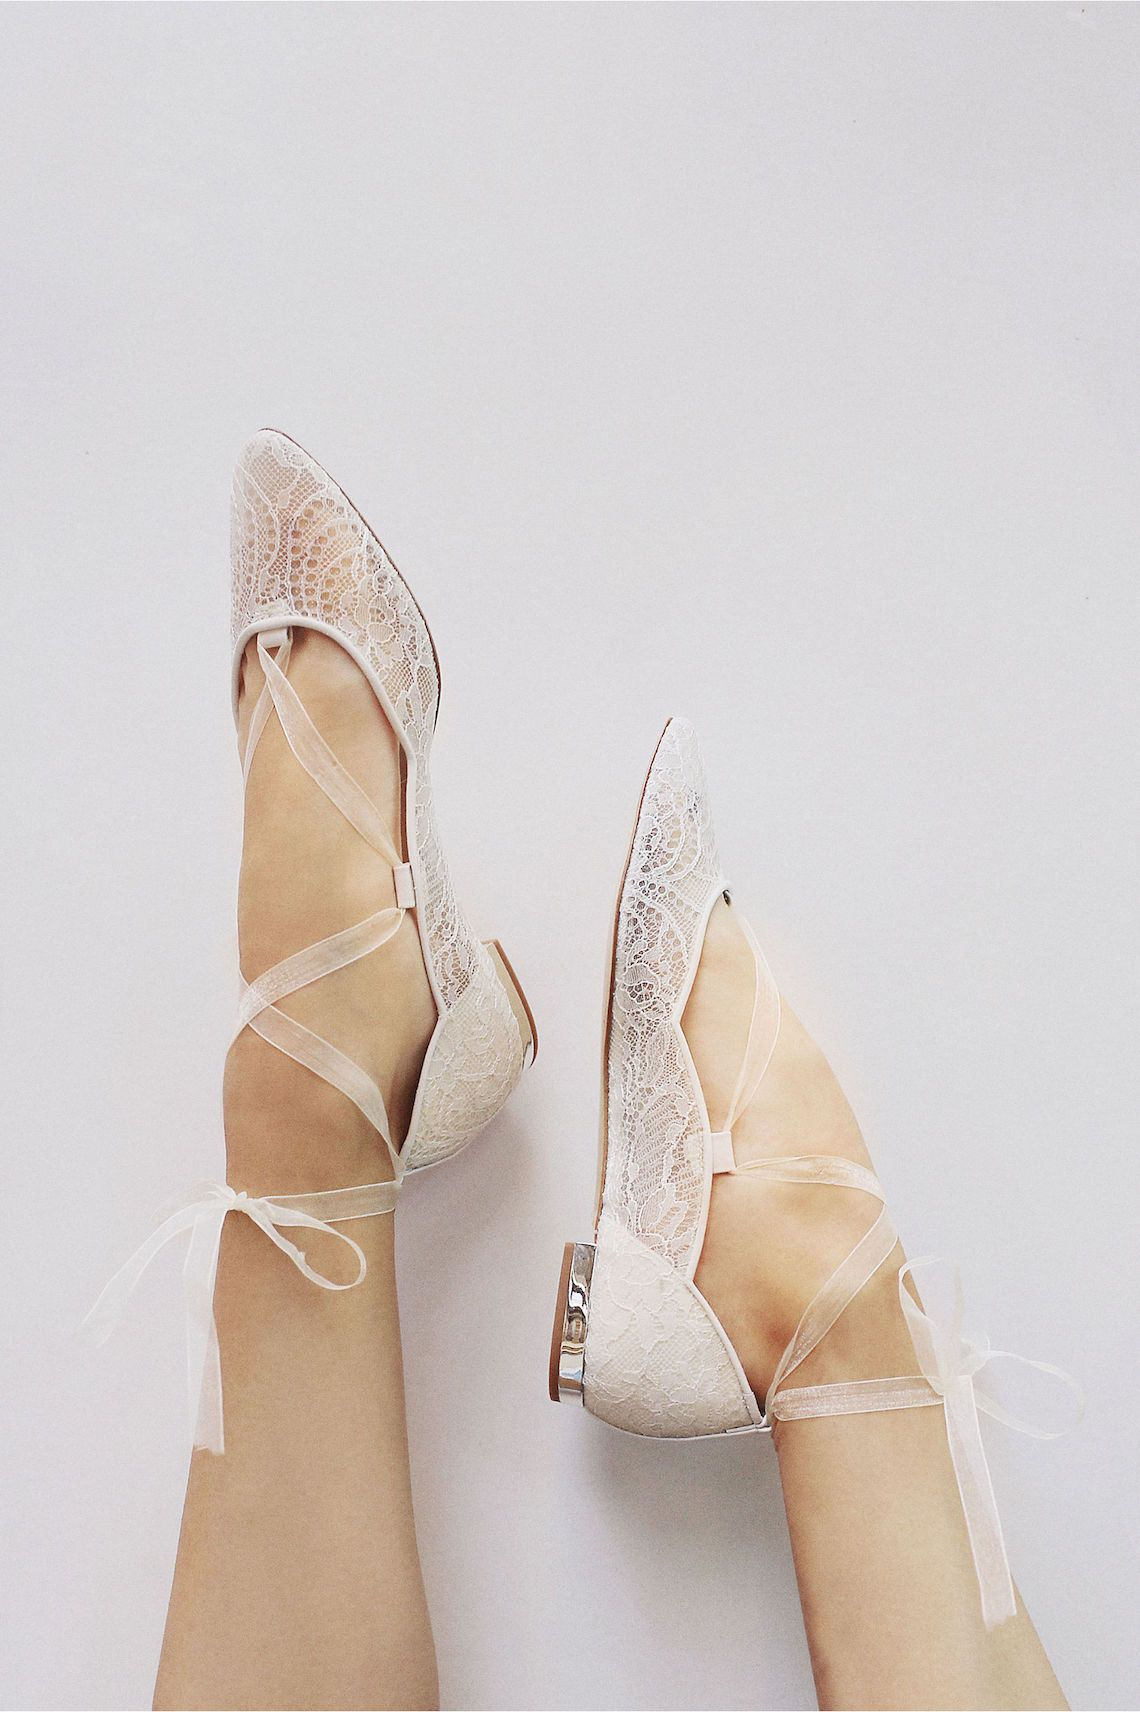 10 Flat Wedding Shoes That Are Just As Chic As Heels Bride